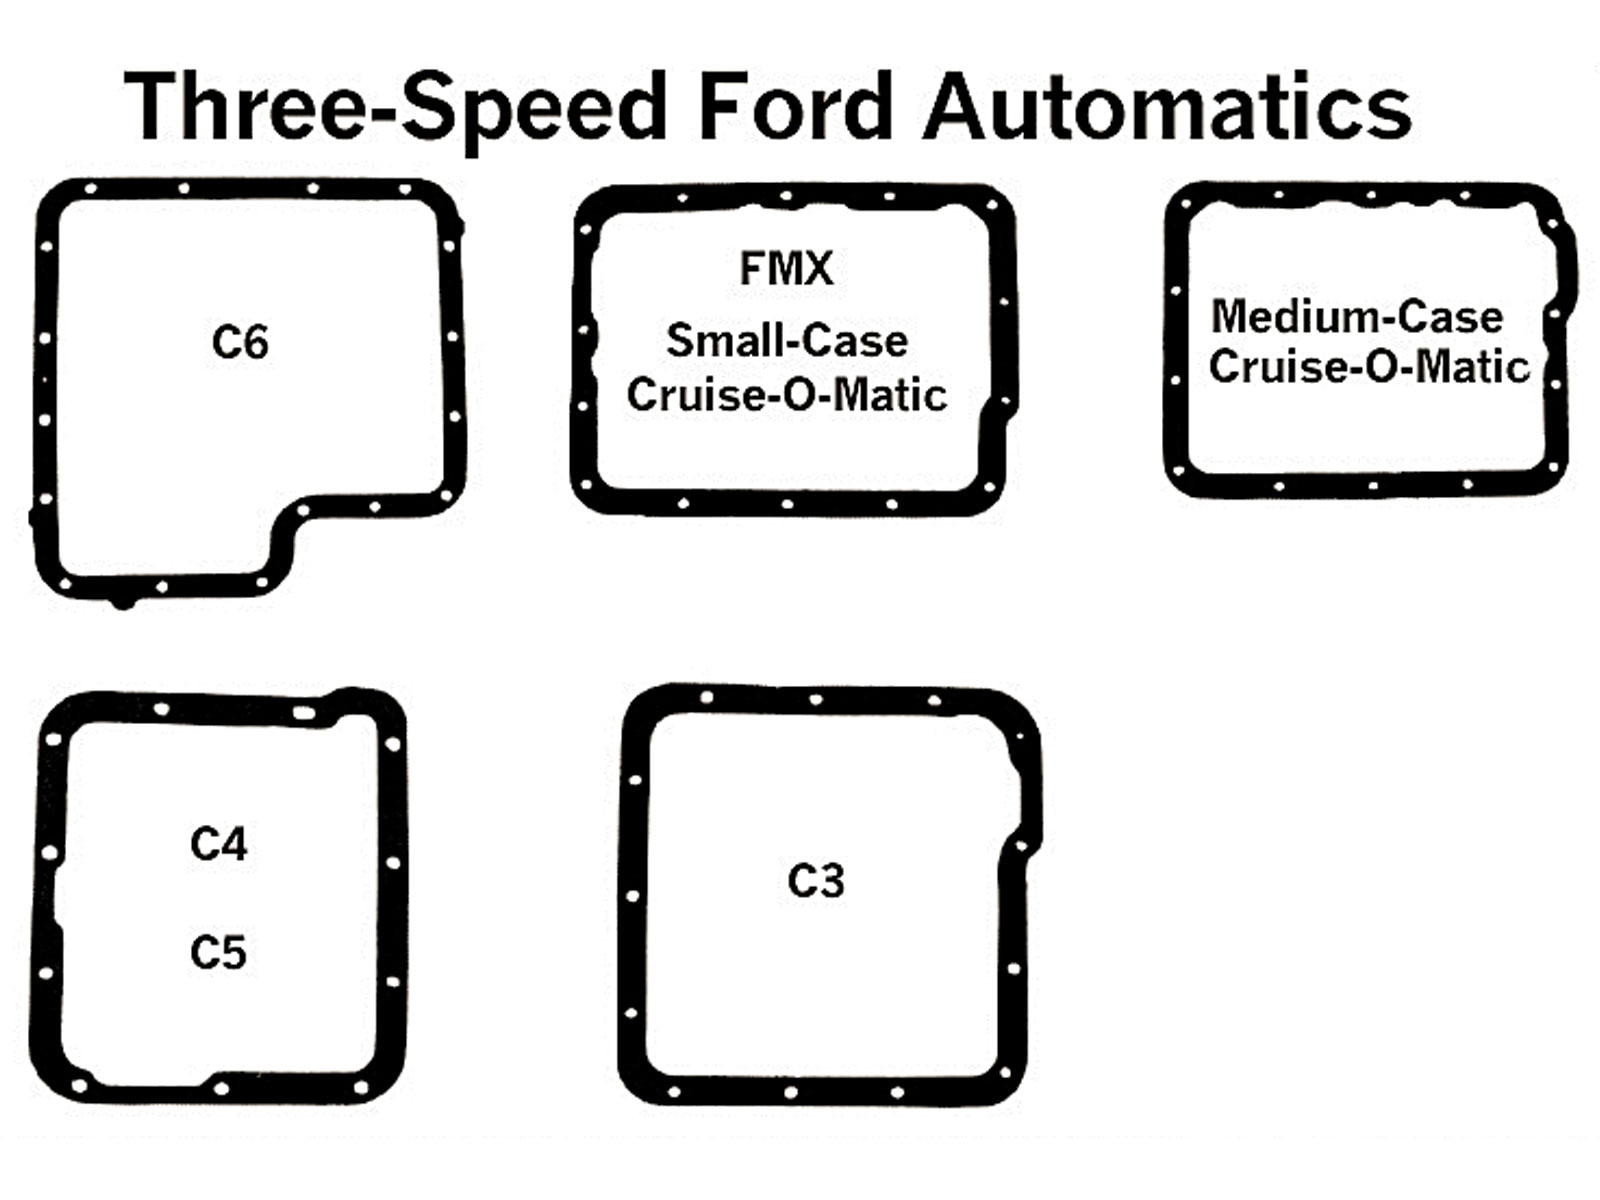 Ford Overdrive Overview